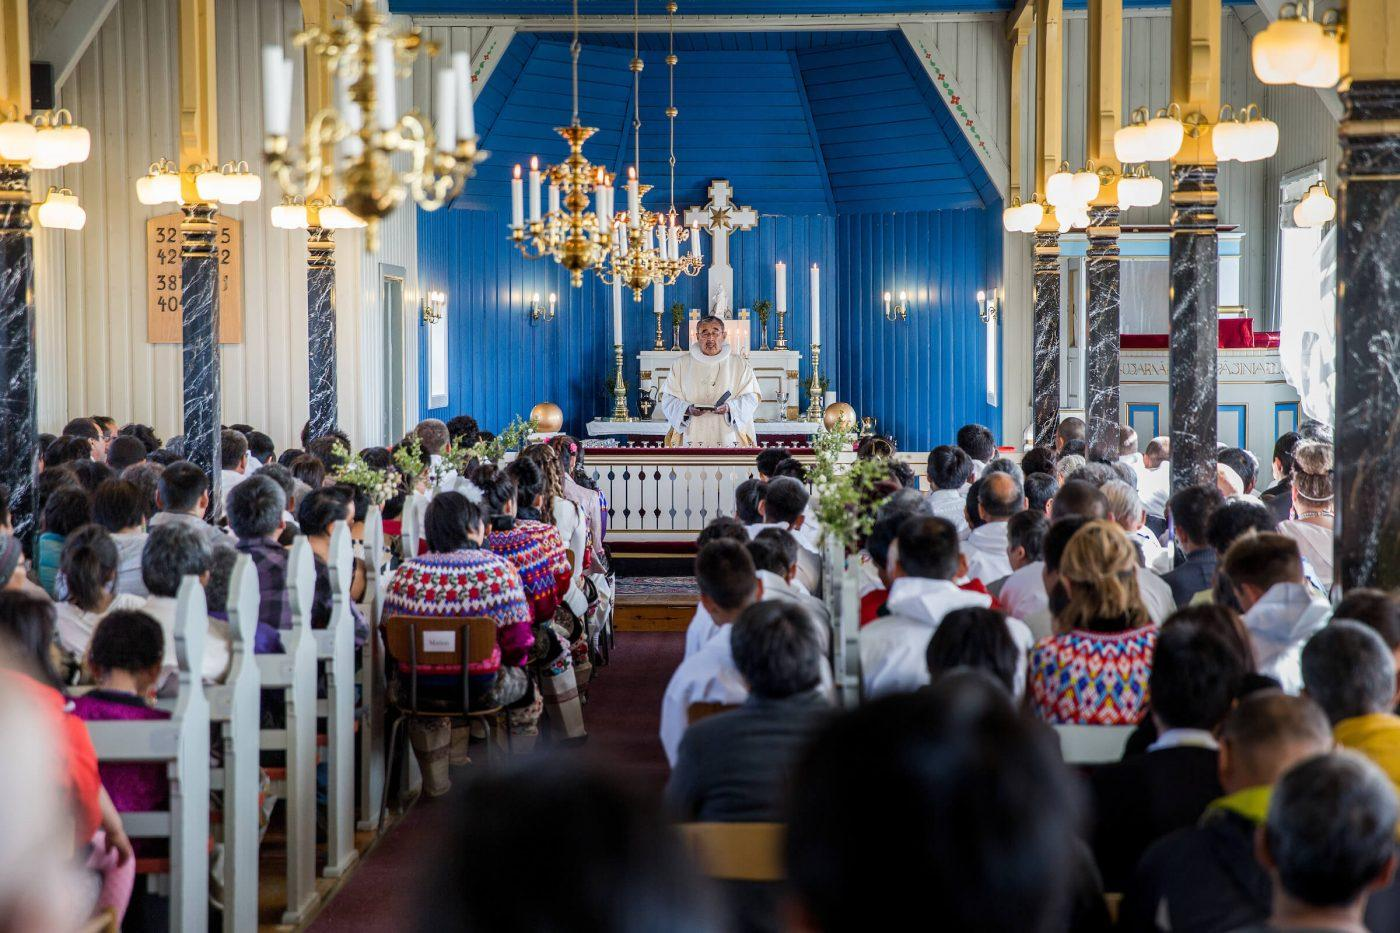 A completely packed church in Nanortalik on the day of Confirmation for the local kids, by Mads Pihl